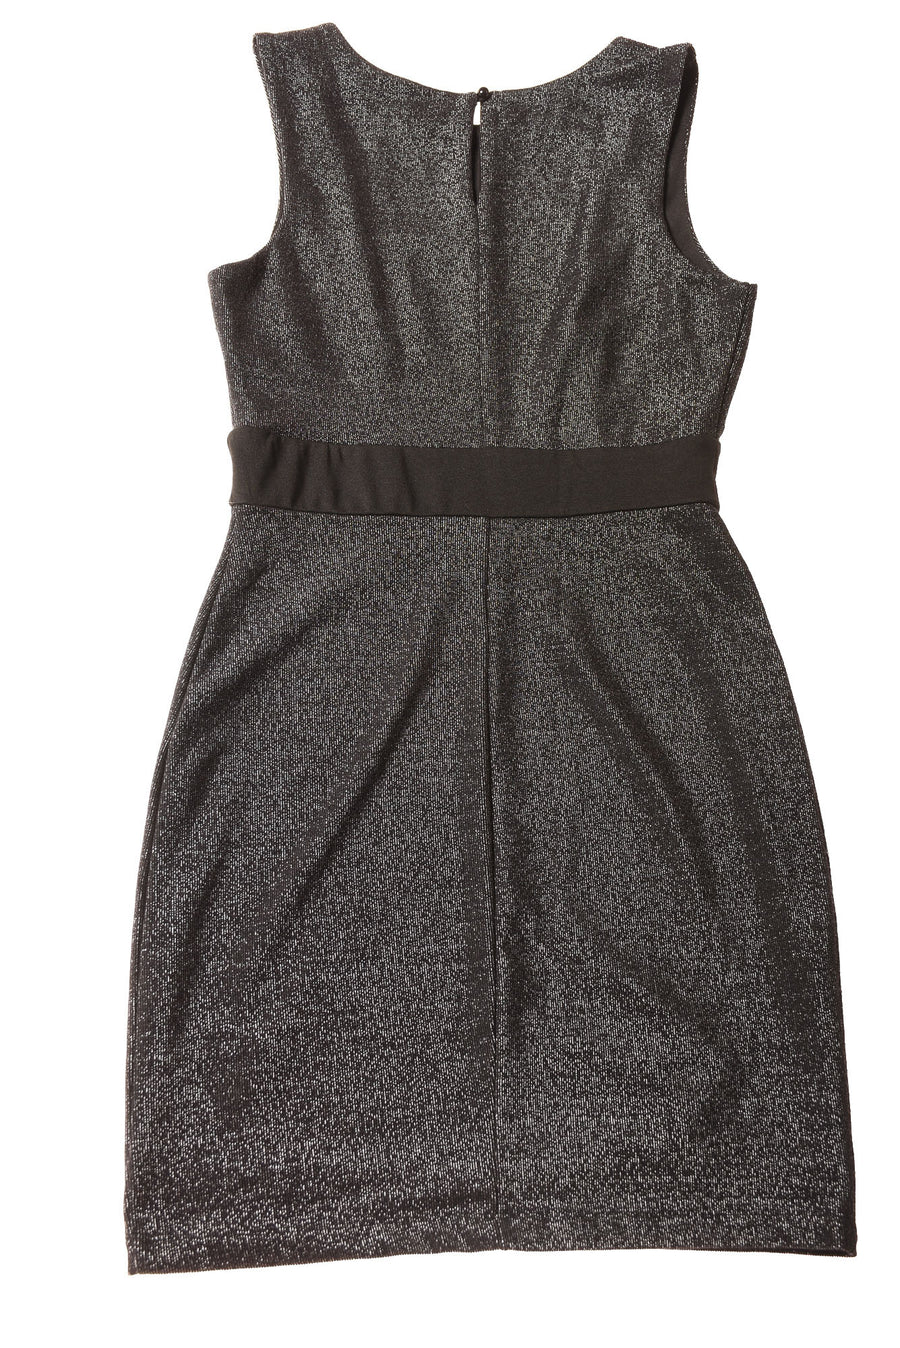 Women's Dress By Forever 21